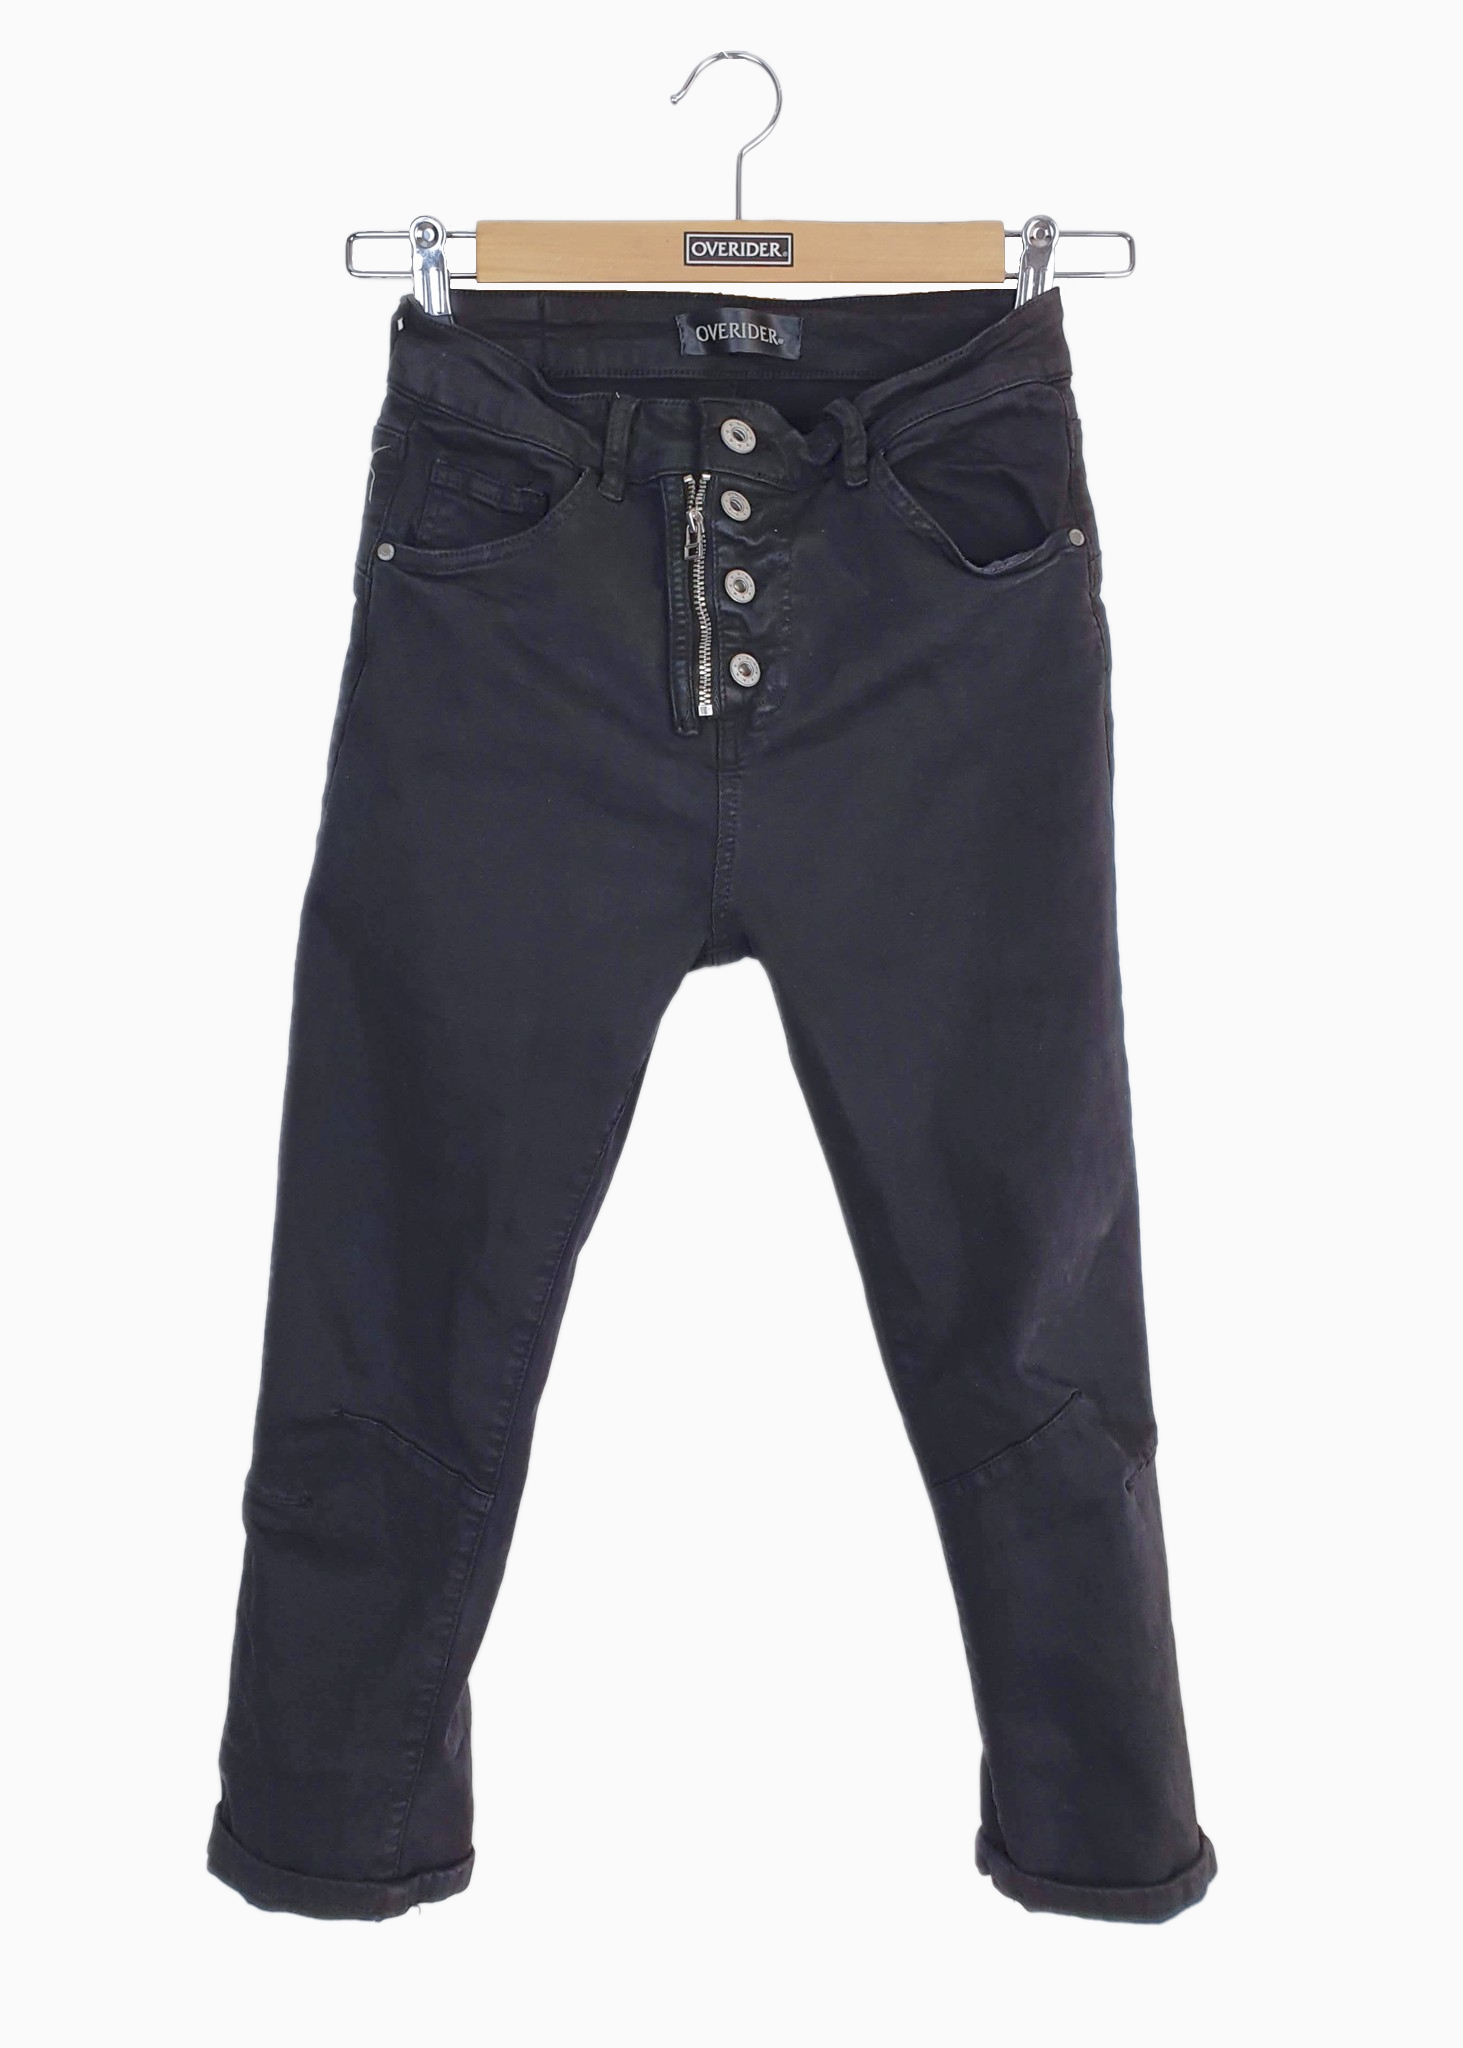 INGA 'C' - Cropped Skinny Jeans with Zip & Buttons - Black